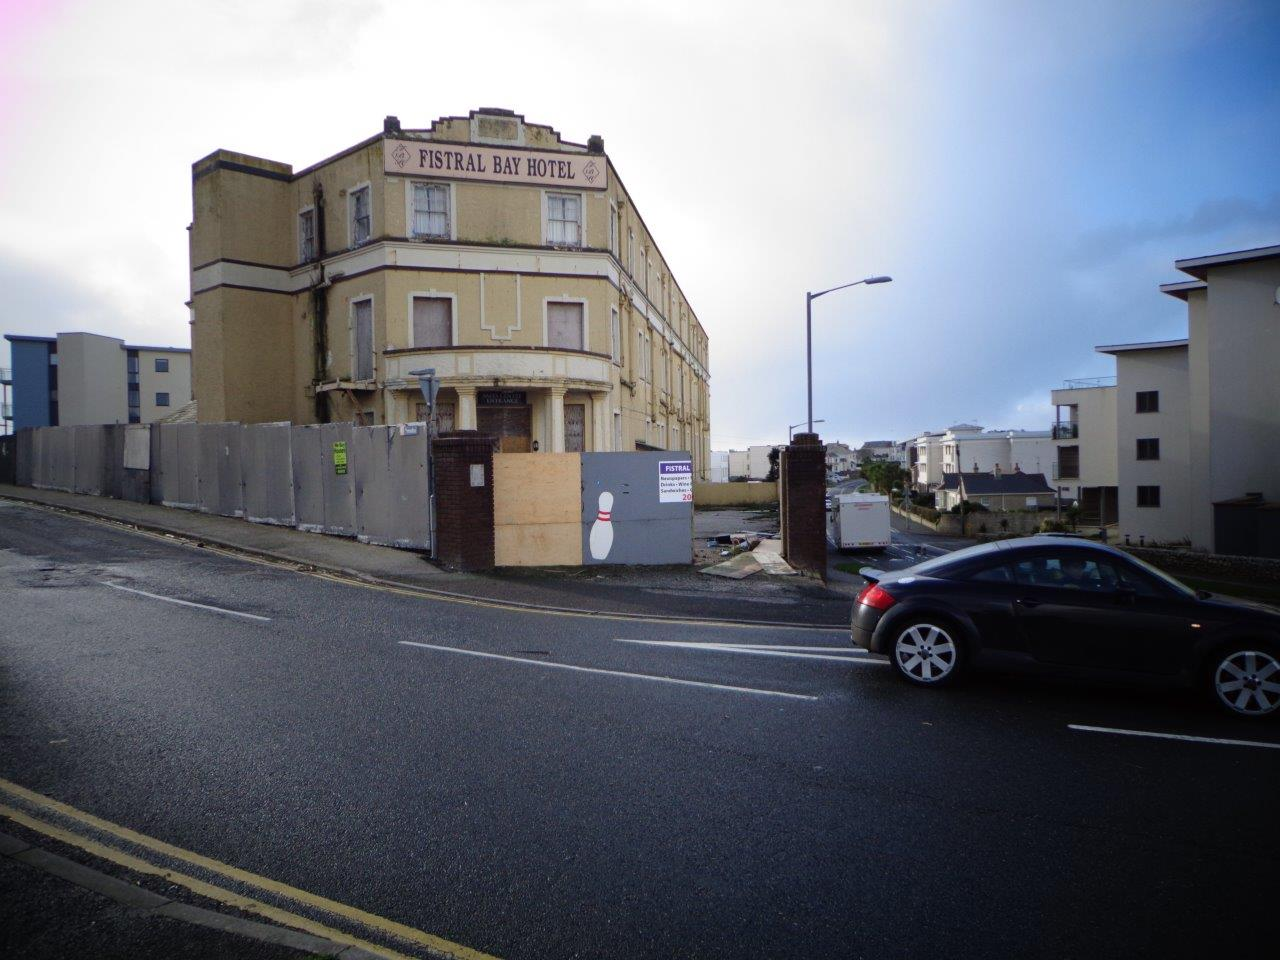 Stephen Gilbert Demands Meeting With Owners of Derelict Fistral Bay Hotel Site